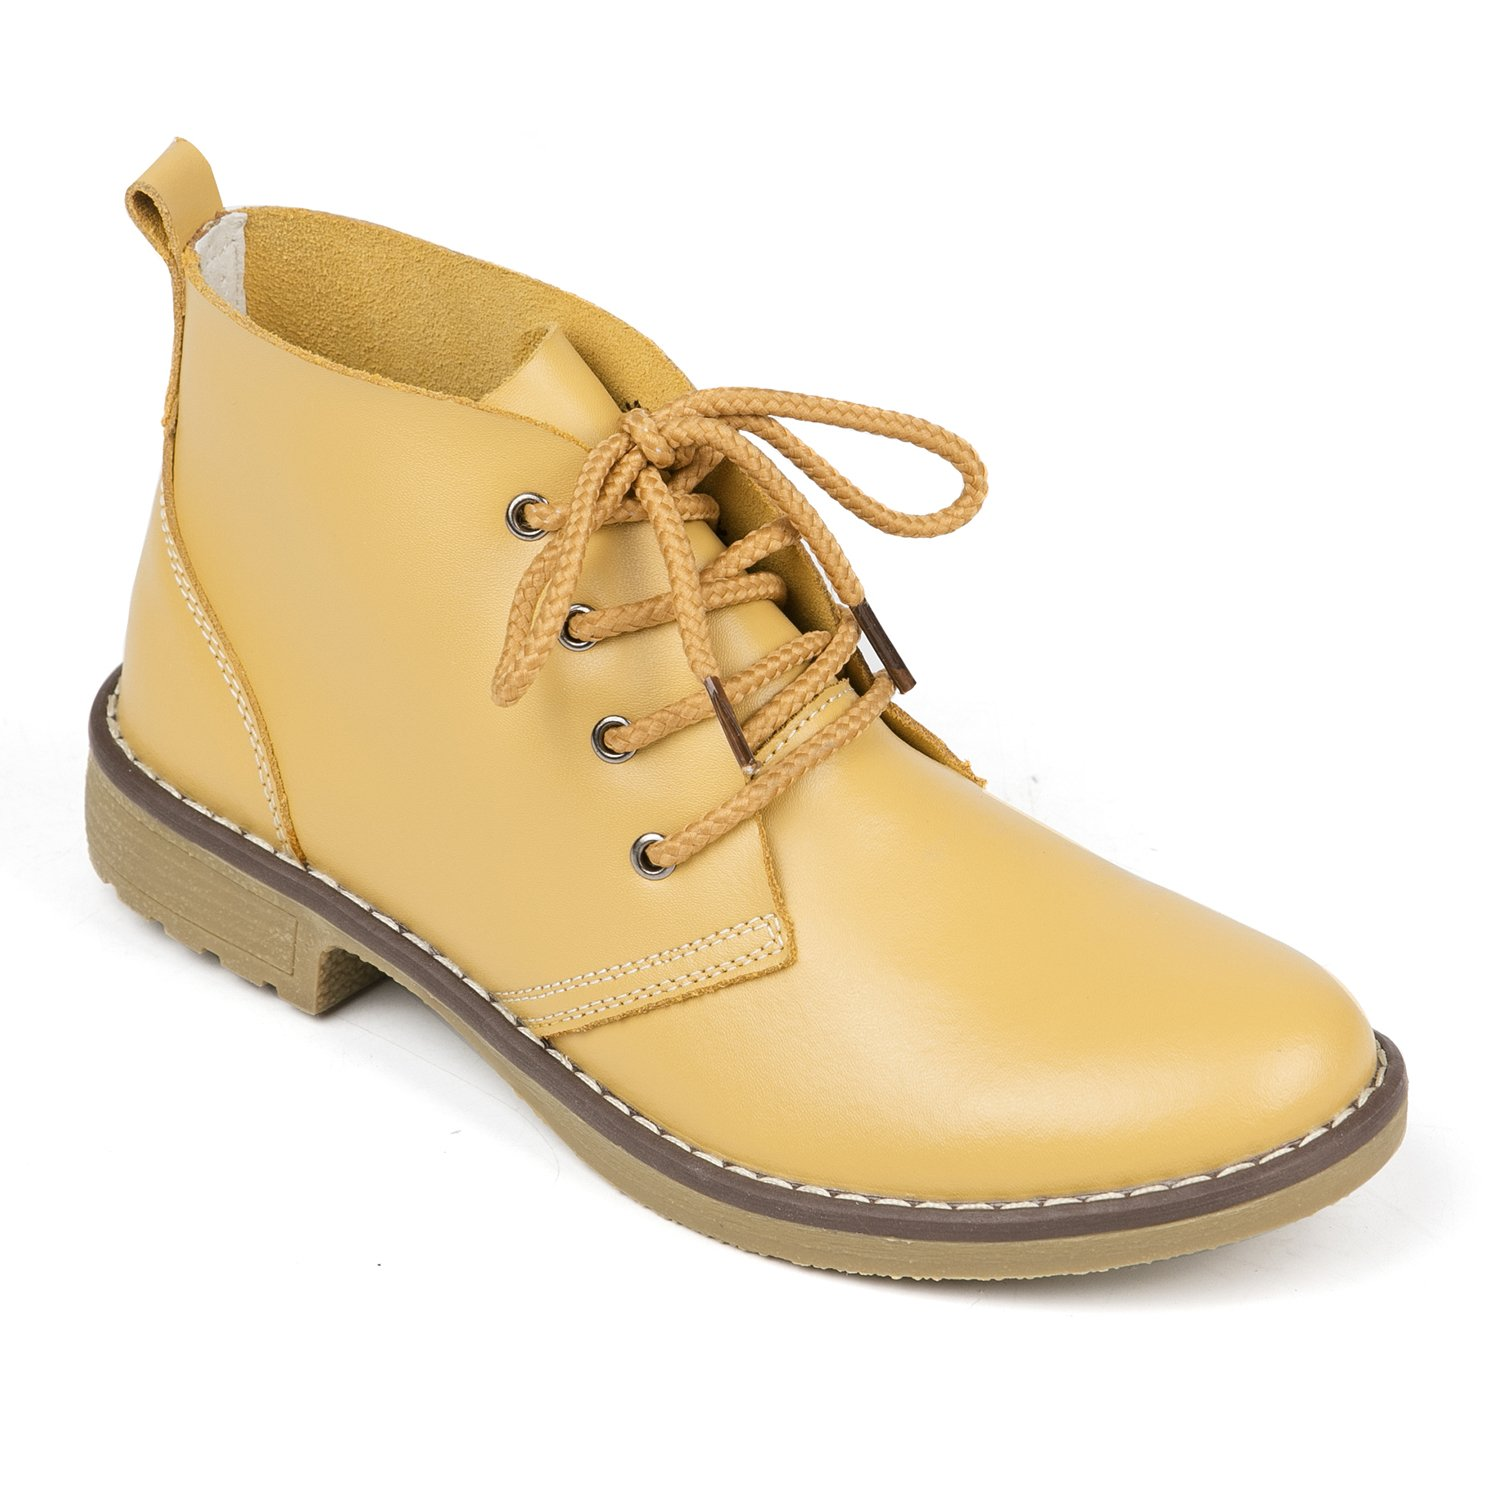 Weideng Candy Color Fashion Women Lace up Genuine Leather Classic Shoe High Style Flat Casual Shoes Boots (6.5, Yellow)